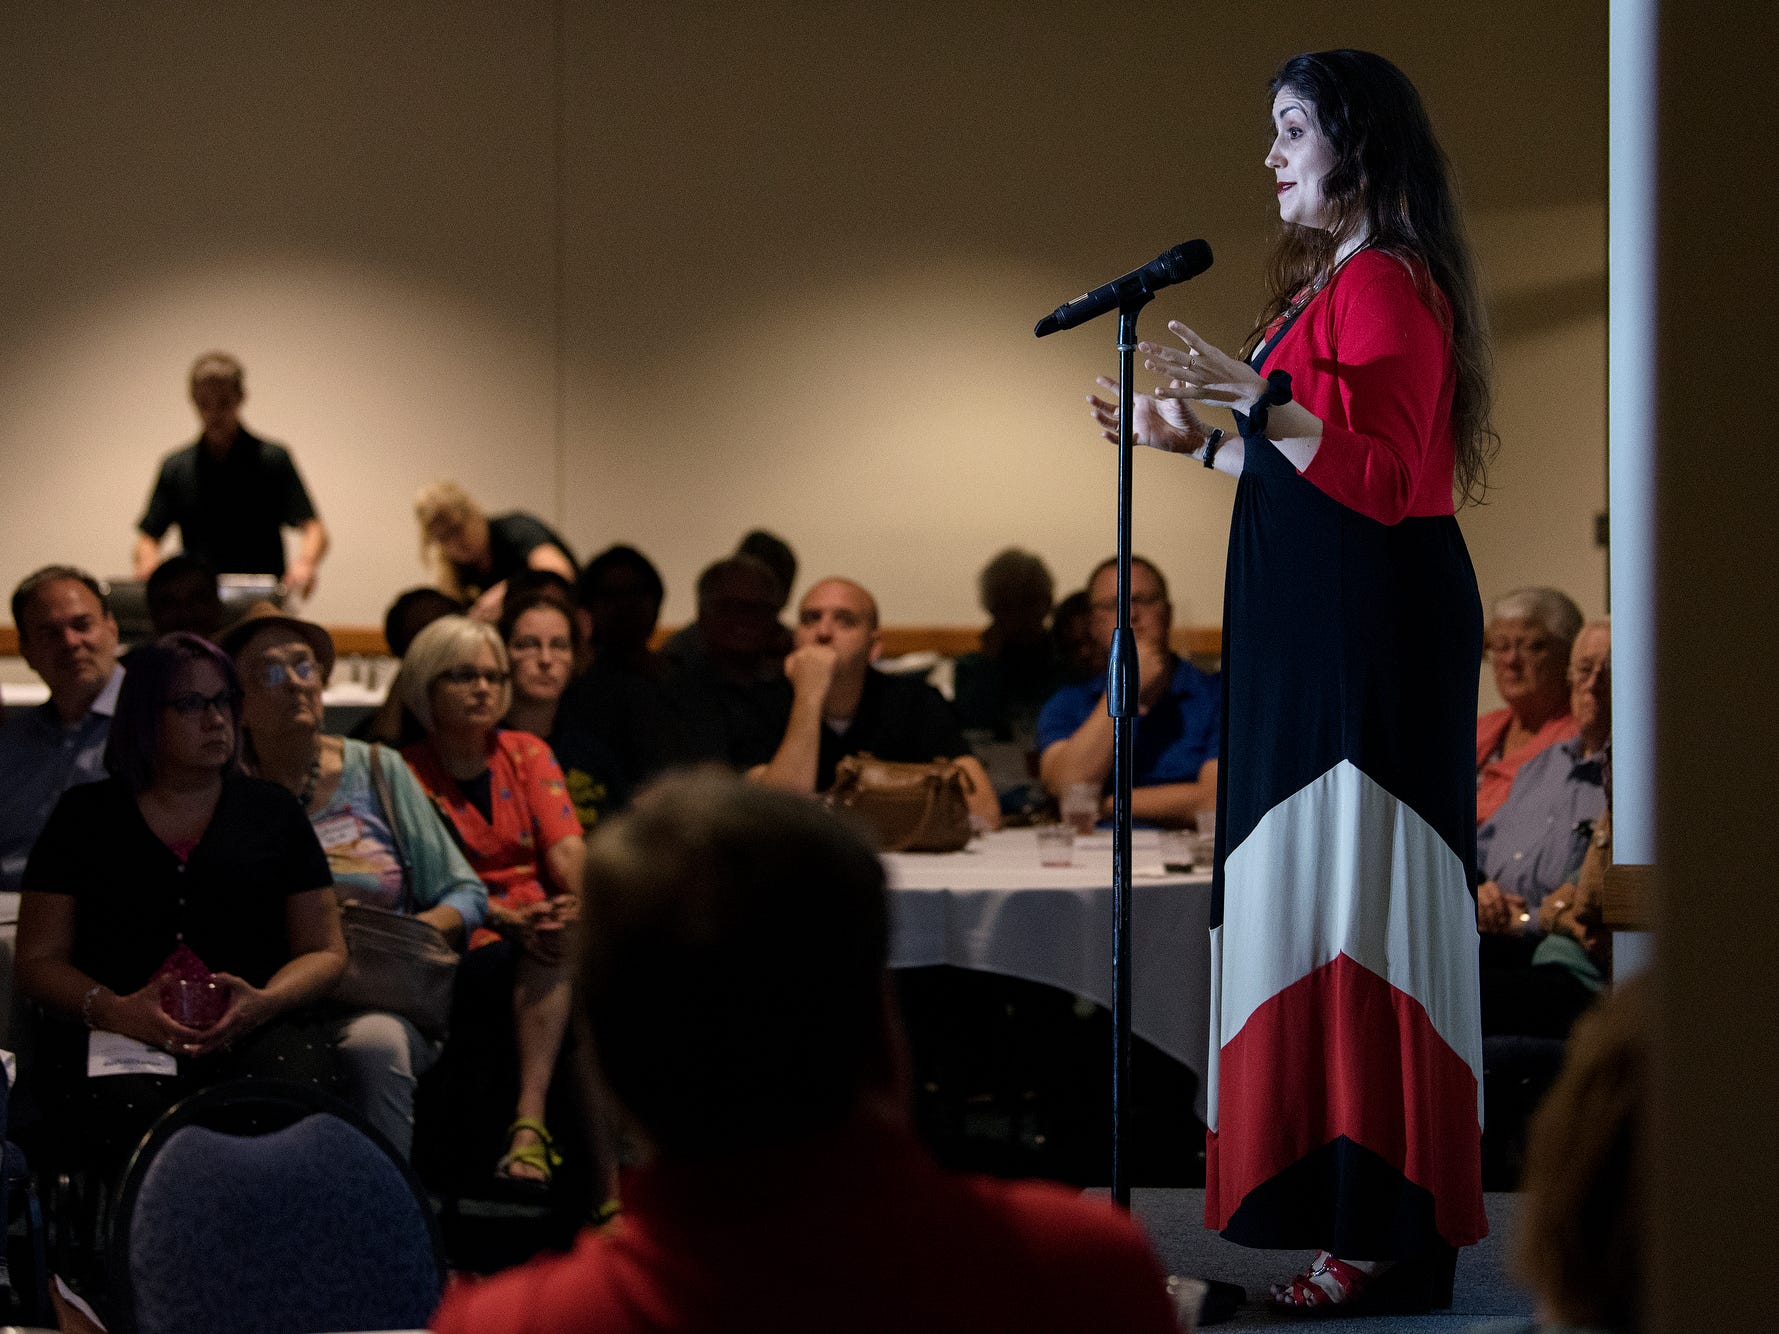 Lesley Keith speaks during the Lansing Storytellers Project: 'Are We There Yet?' event on Tuesday, Sept. 18, 2018, at the Hannah Community Center in East Lansing.